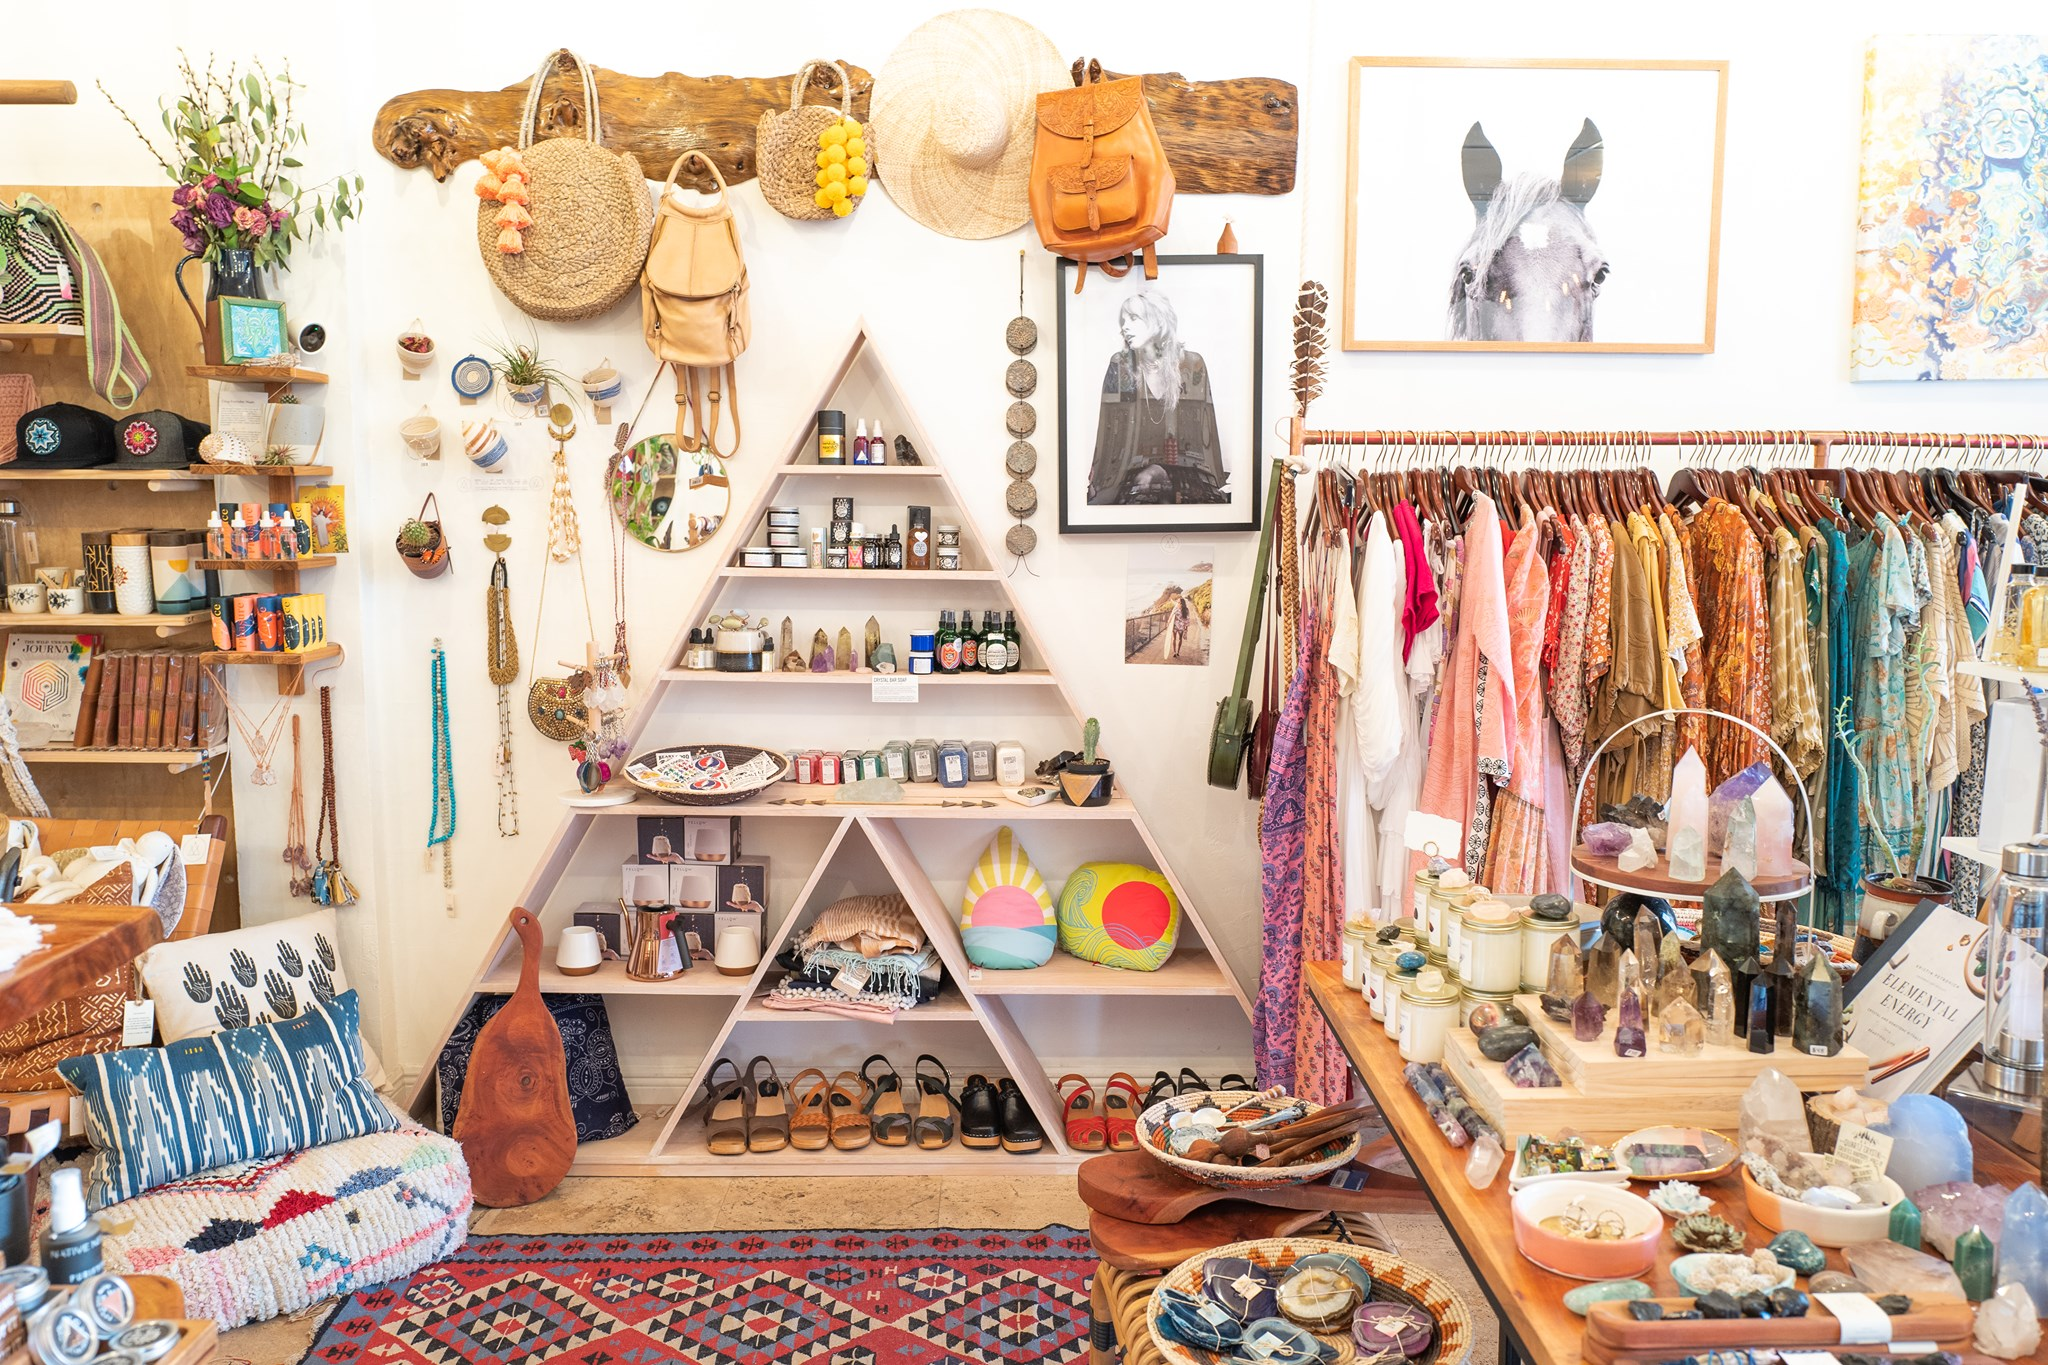 Meadow Collective pinecrest miami small business holiday shopping